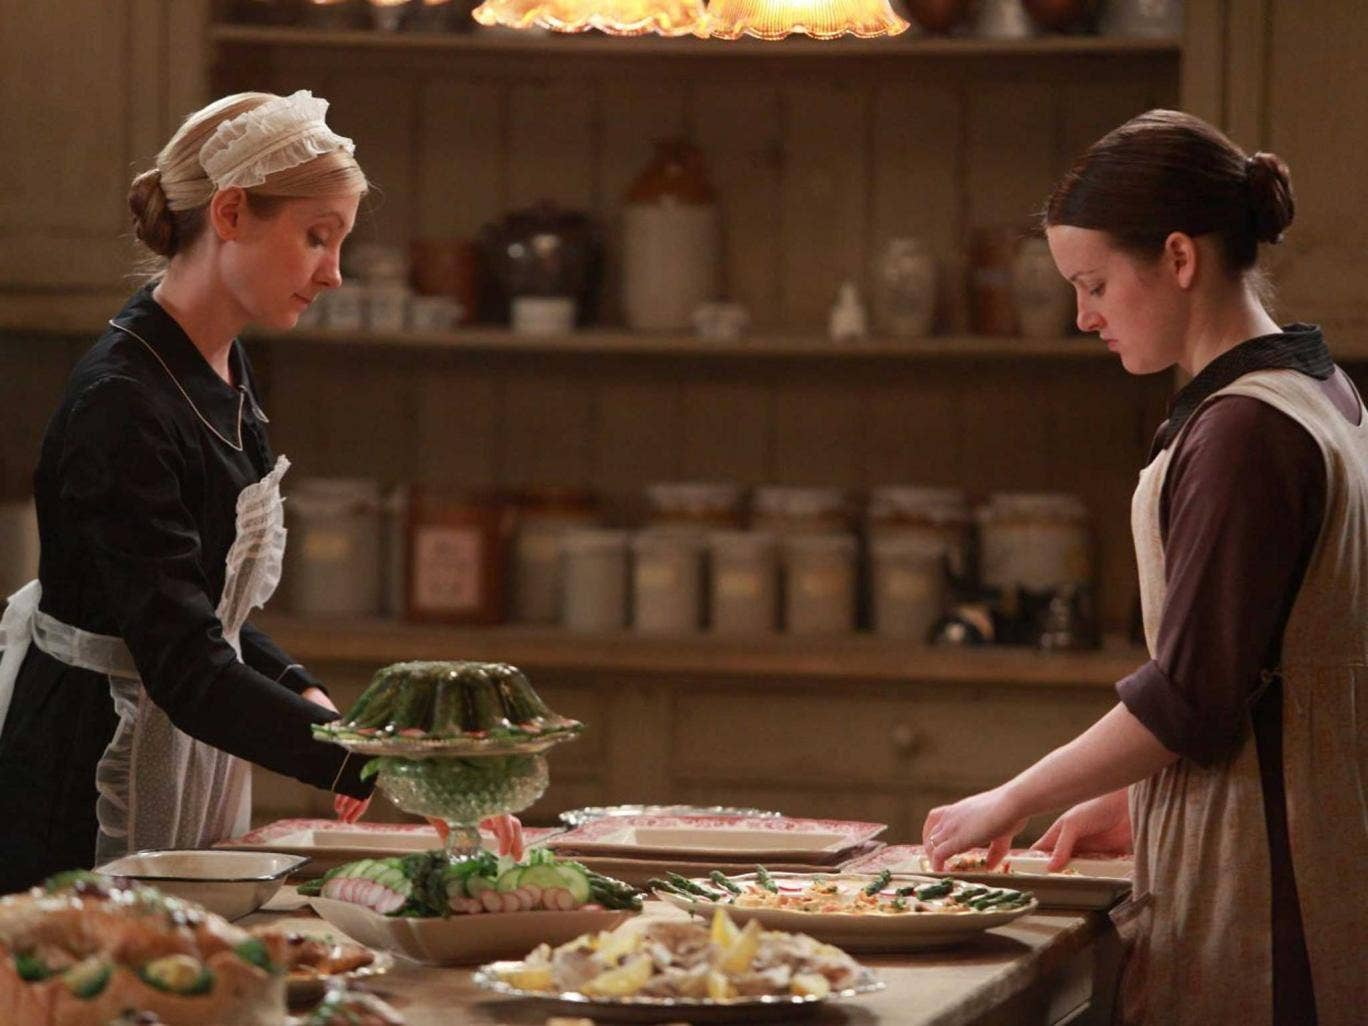 Past masters: few recipes survive from the kitchens of great houses like the one in 'Downton Abbey'